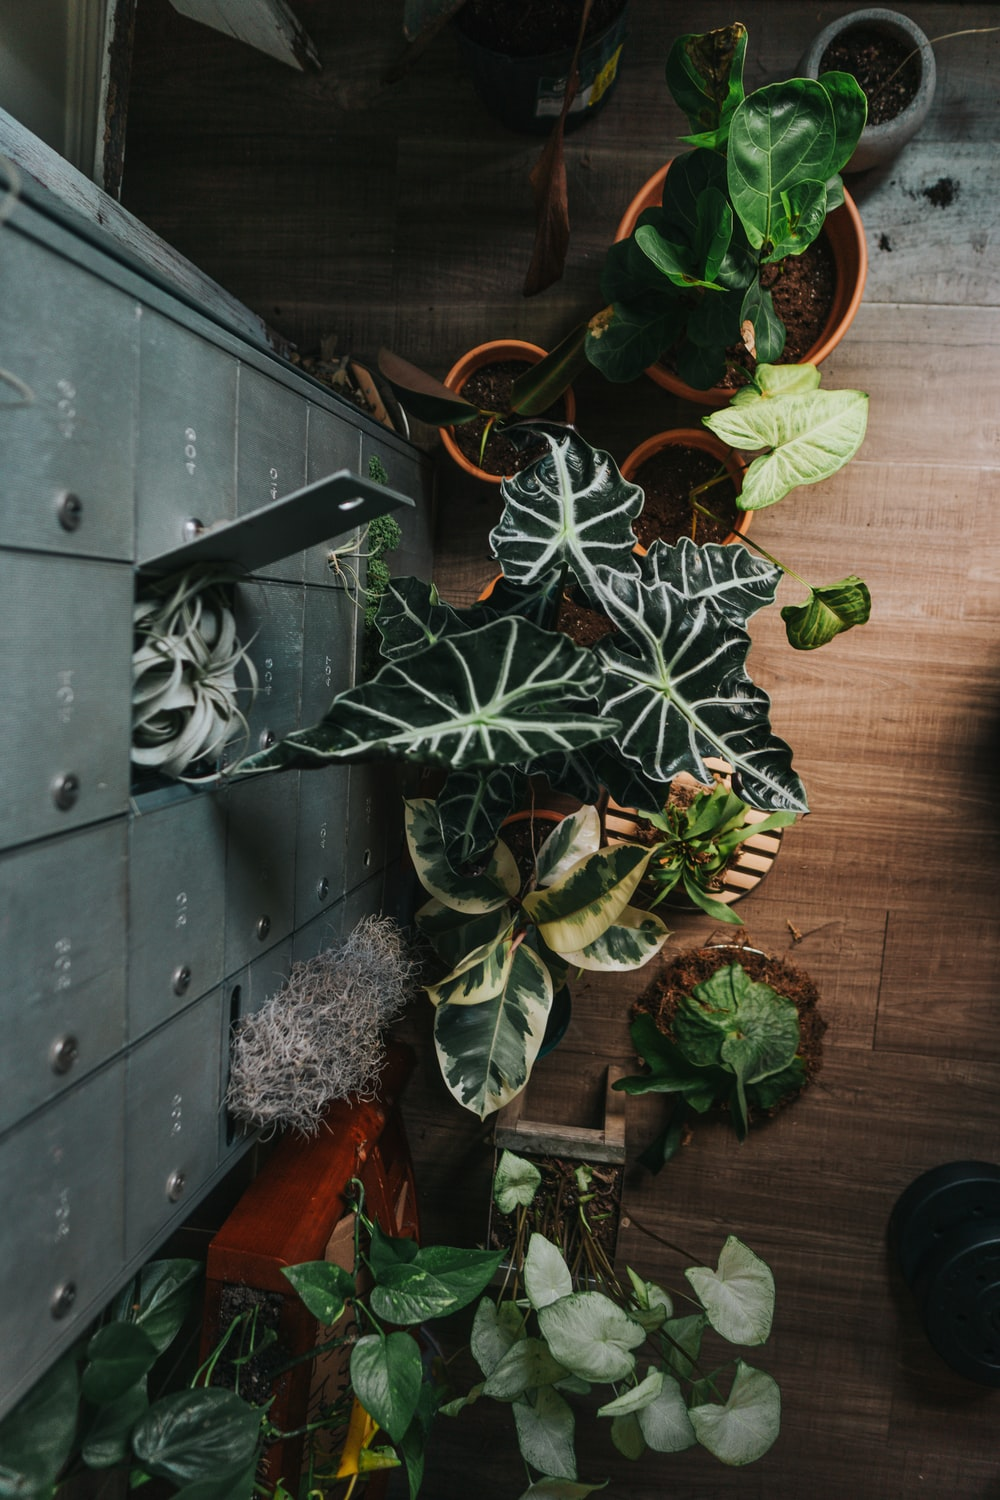 green plant on black wooden table